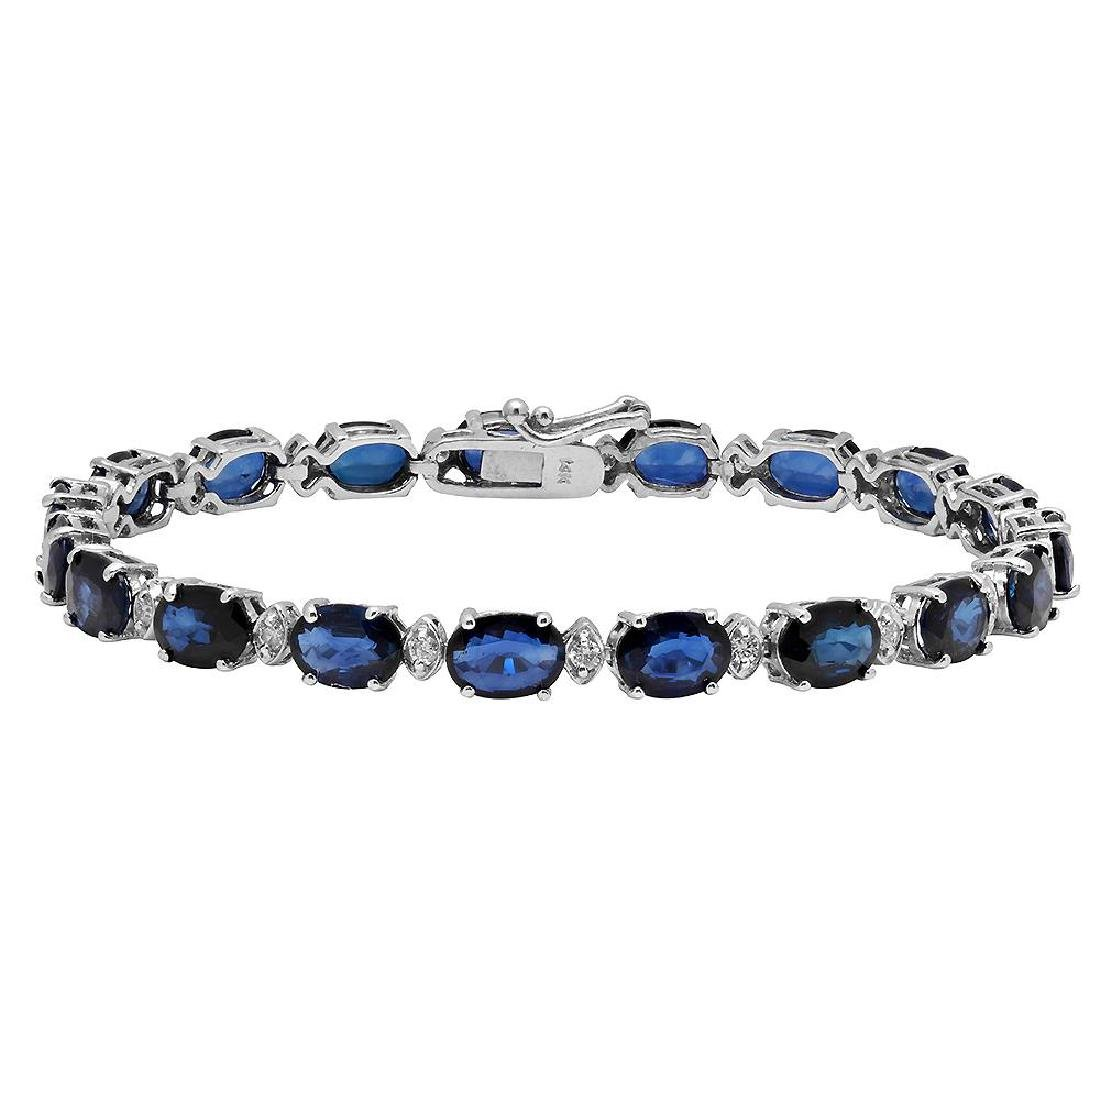 14k White Gold 16.85ct Sapphire 0.60ct Diamond Bracelet